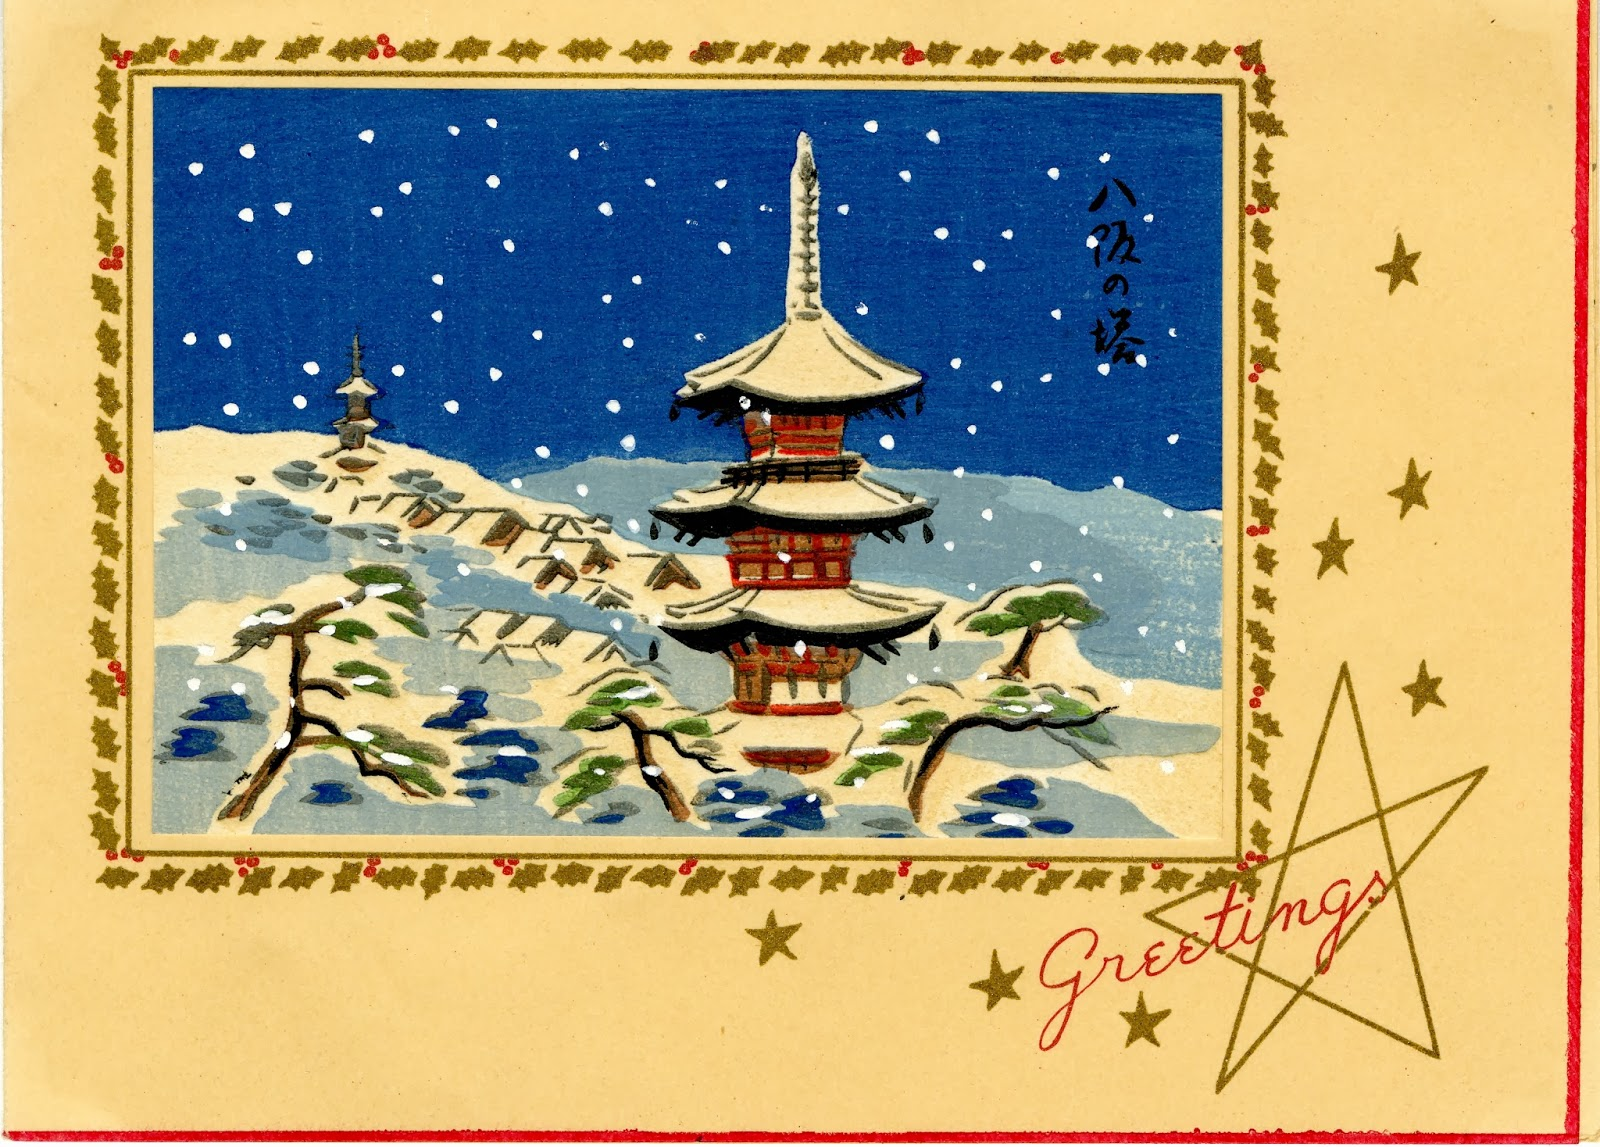 Curiosities & Wonders: Season\'s Greetings from Japan